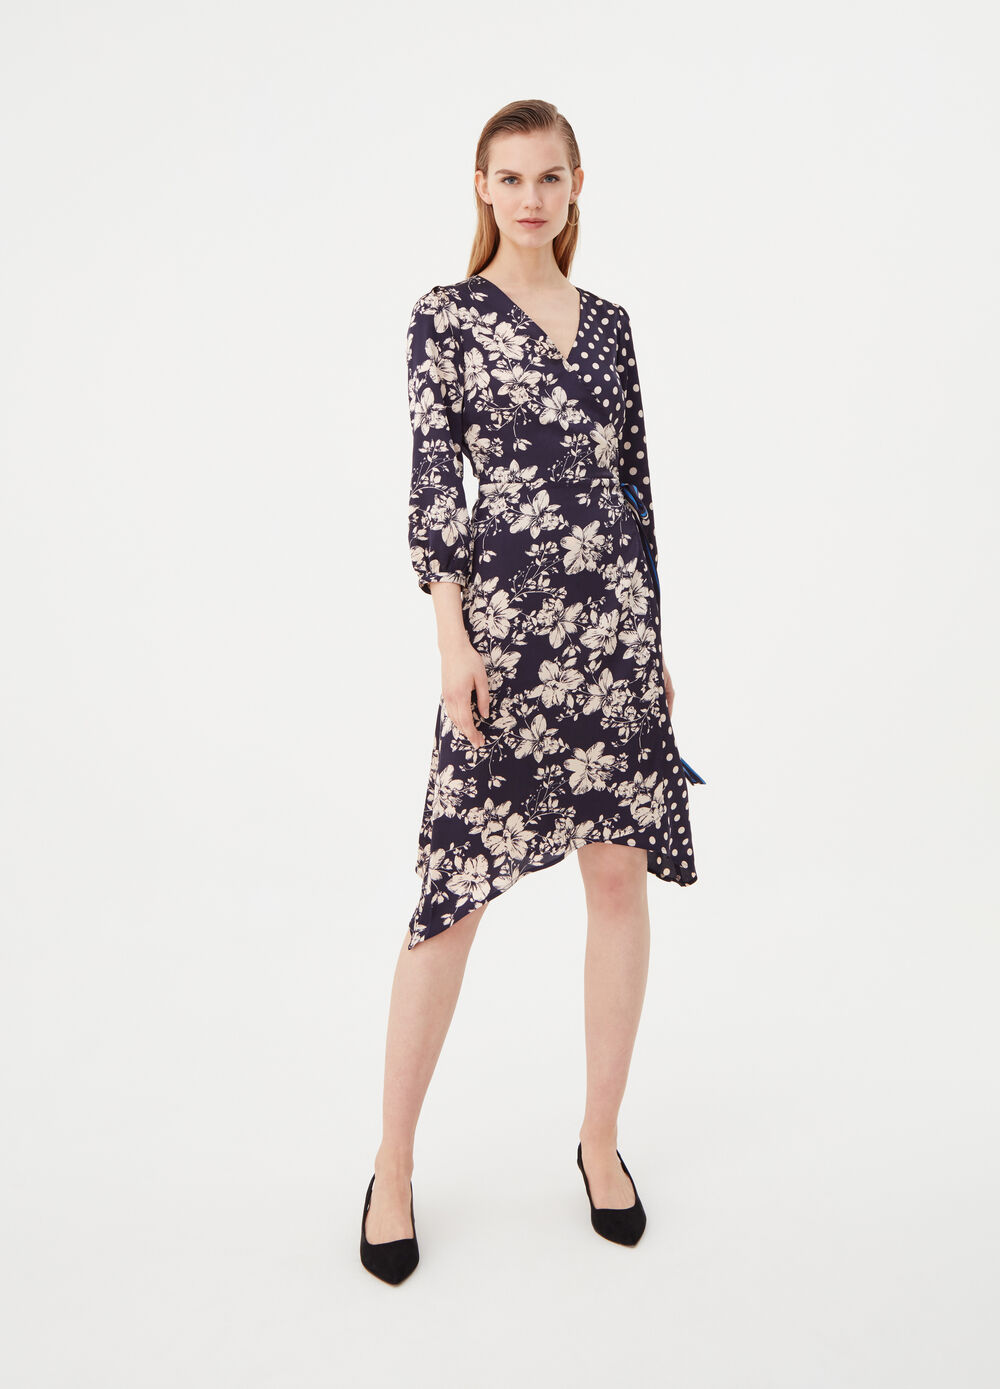 Kimono dress with flowers and polka dots